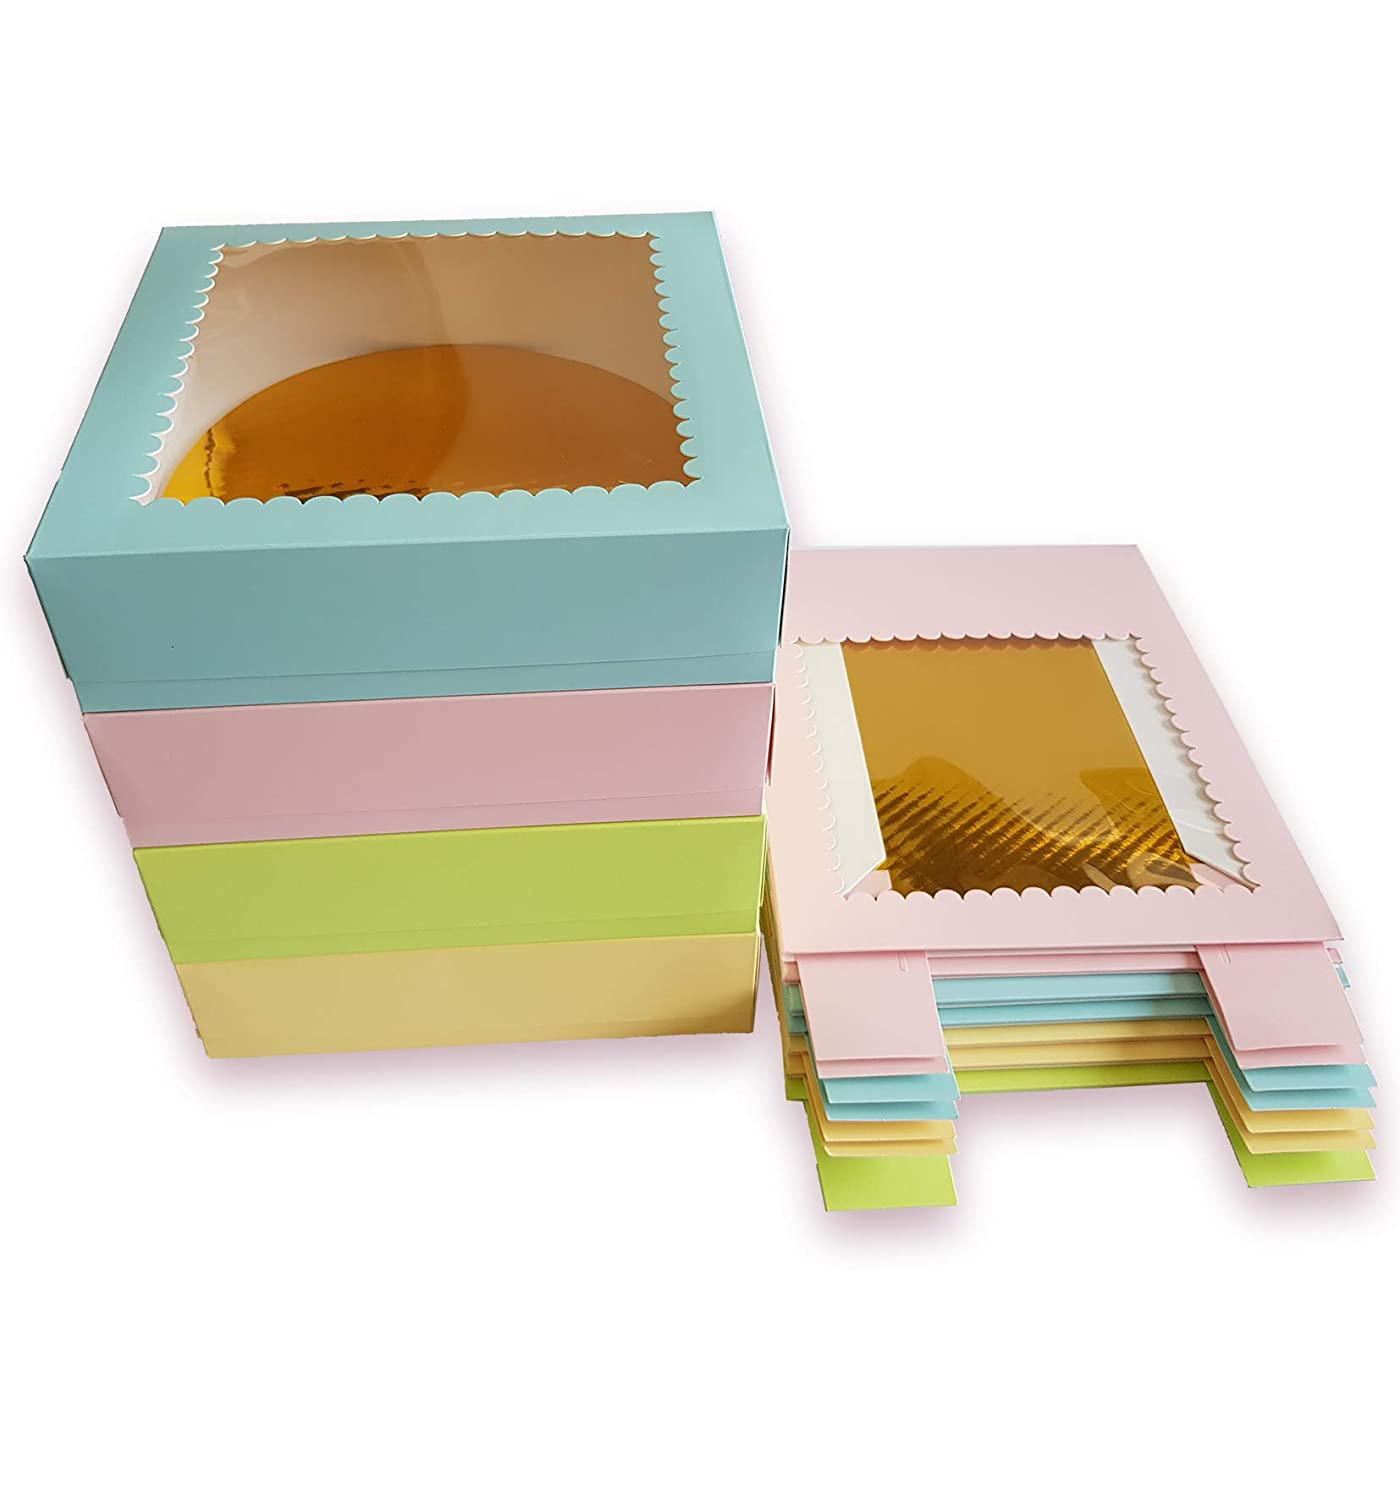 CooKeezz Couture - Cake Box - Colored Window Bakery Packaging Decorated Boxes Great for Donuts , Bakery , Pies ,Cakes - Assorted 12 Pack Boxes in 4 Pastel Colors,Included 12 Round Cake Boards (10x10x2.5)